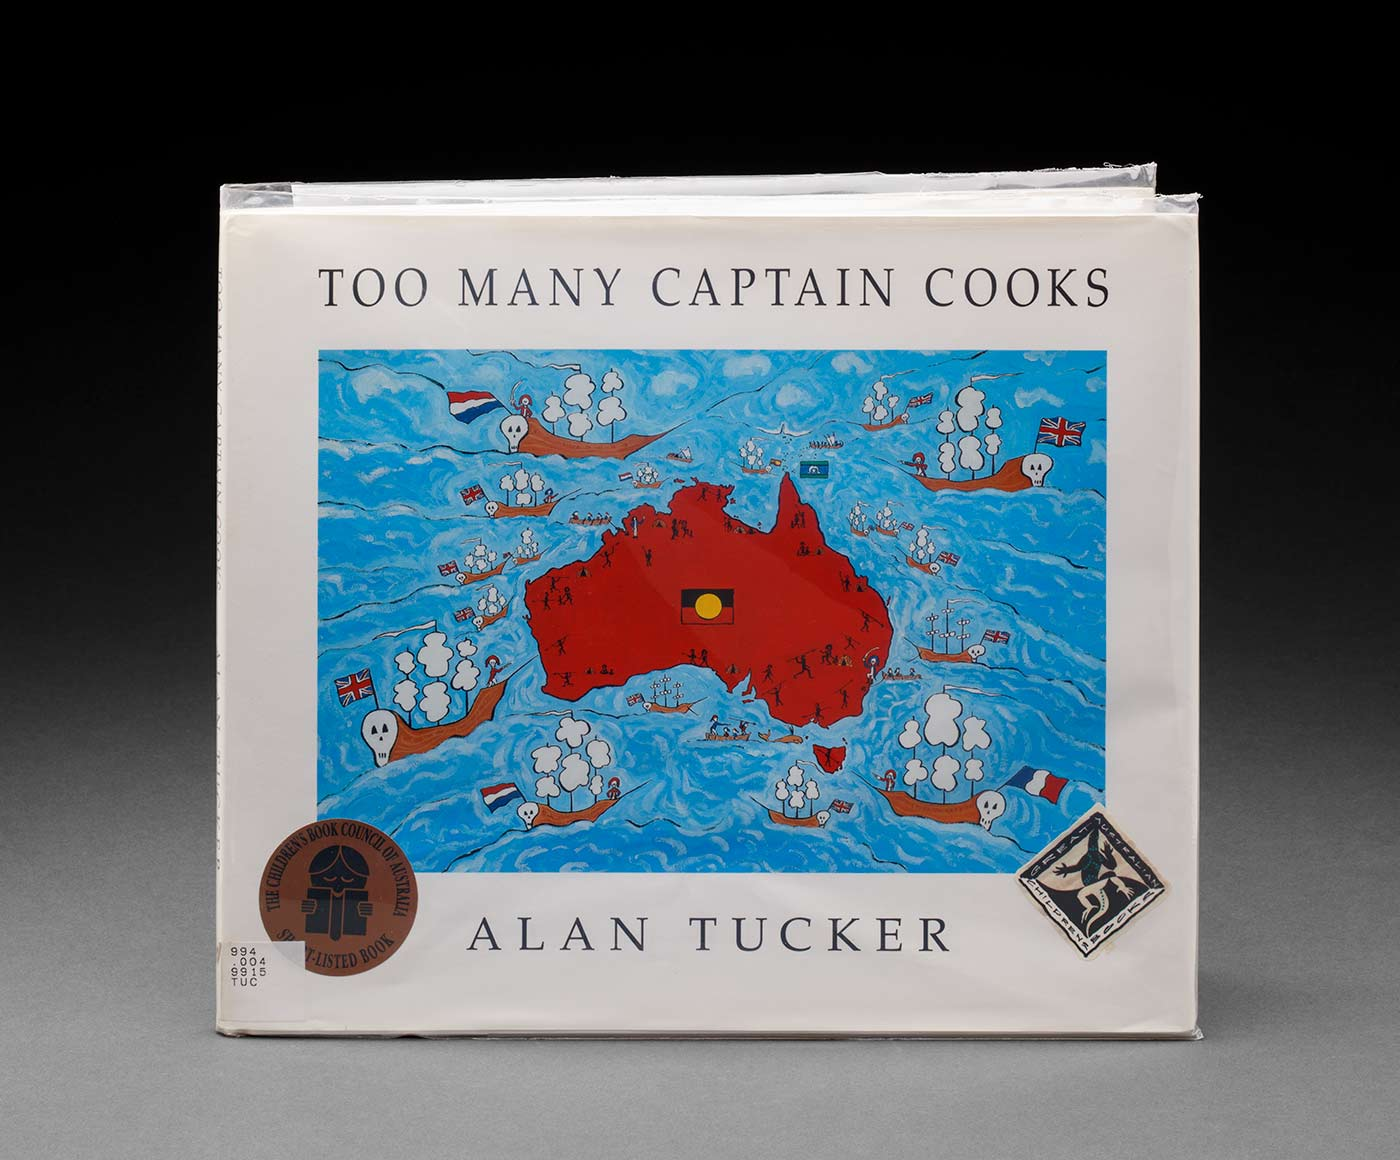 A hard cover children's book titled 'TOO MANY CAPTAIN COOKS' by 'ALAN TUCKER'. The cover features a map of Australia in red surrounded by blue water with a white boarder. There are boats with skulls at one end on the water around Australia and figures around the edge of Australia holding spears. There is an Aboriginal flag in the centre of Australia. - click to view larger image